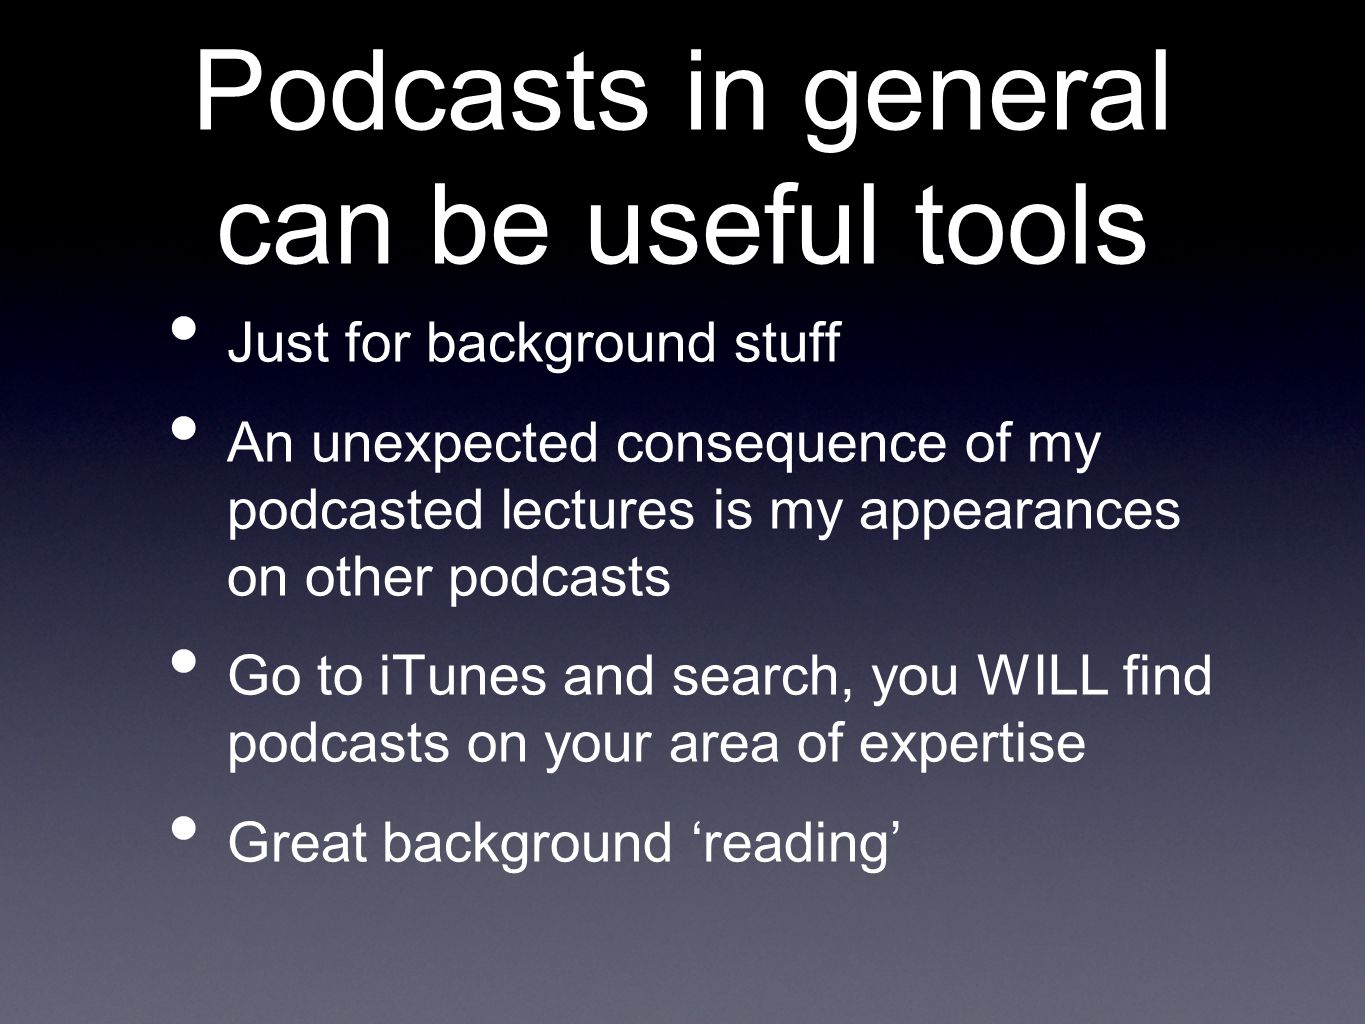 Podcasts in general can be useful tools Just for background stuff An unexpected consequence of my podcasted lectures is my appearances on other podcasts Go to iTunes and search, you WILL find podcasts on your area of expertise Great background 'reading'